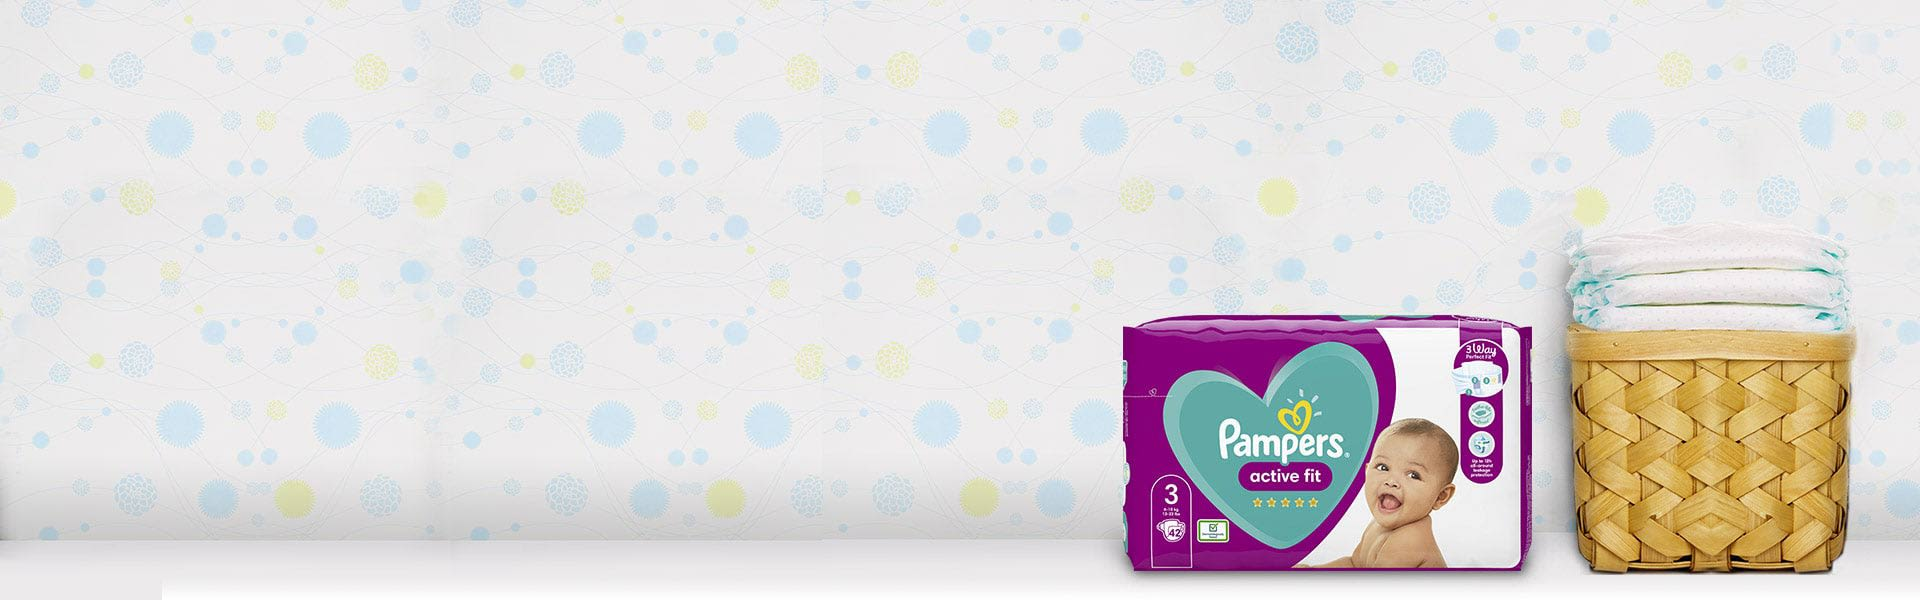 Pampers Active Fit Hero